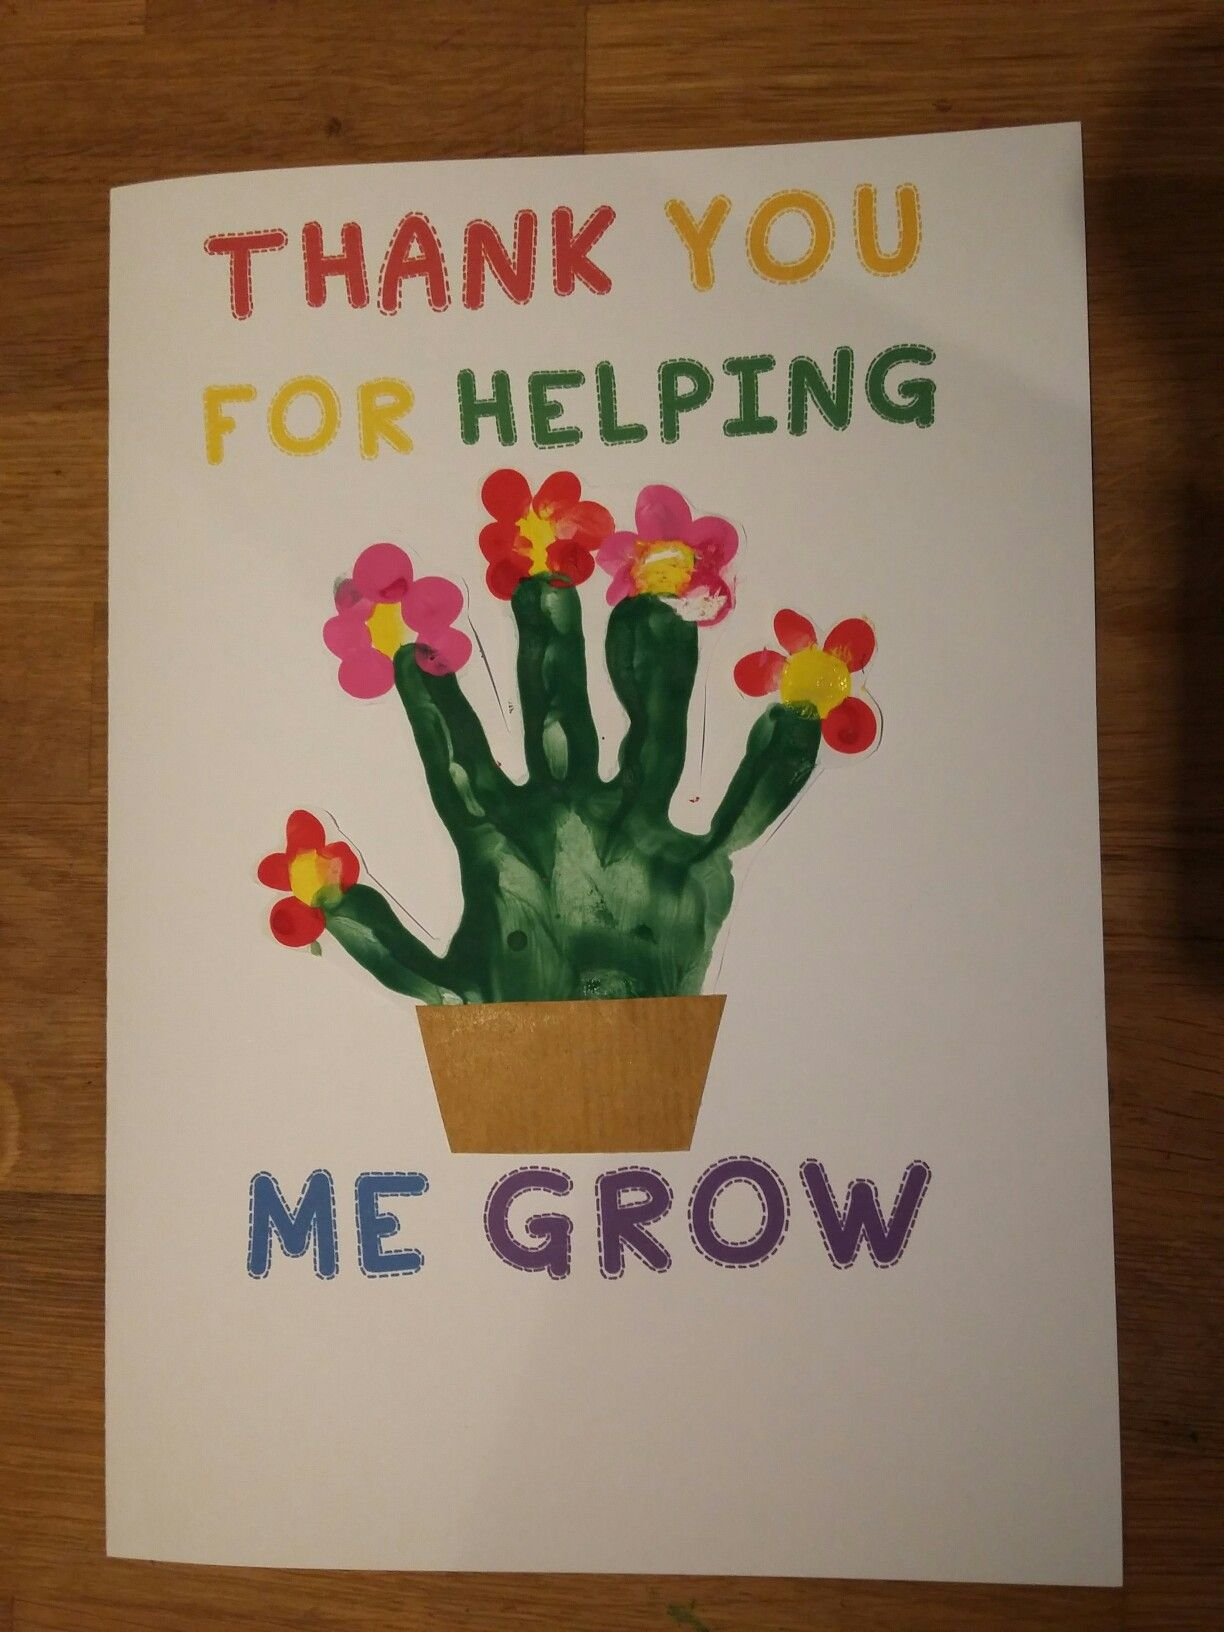 Preschool Nursery Thank You Card Art Finger Painting Thank You Cards From Kids Teacher Cards Greeting Cards For Teachers